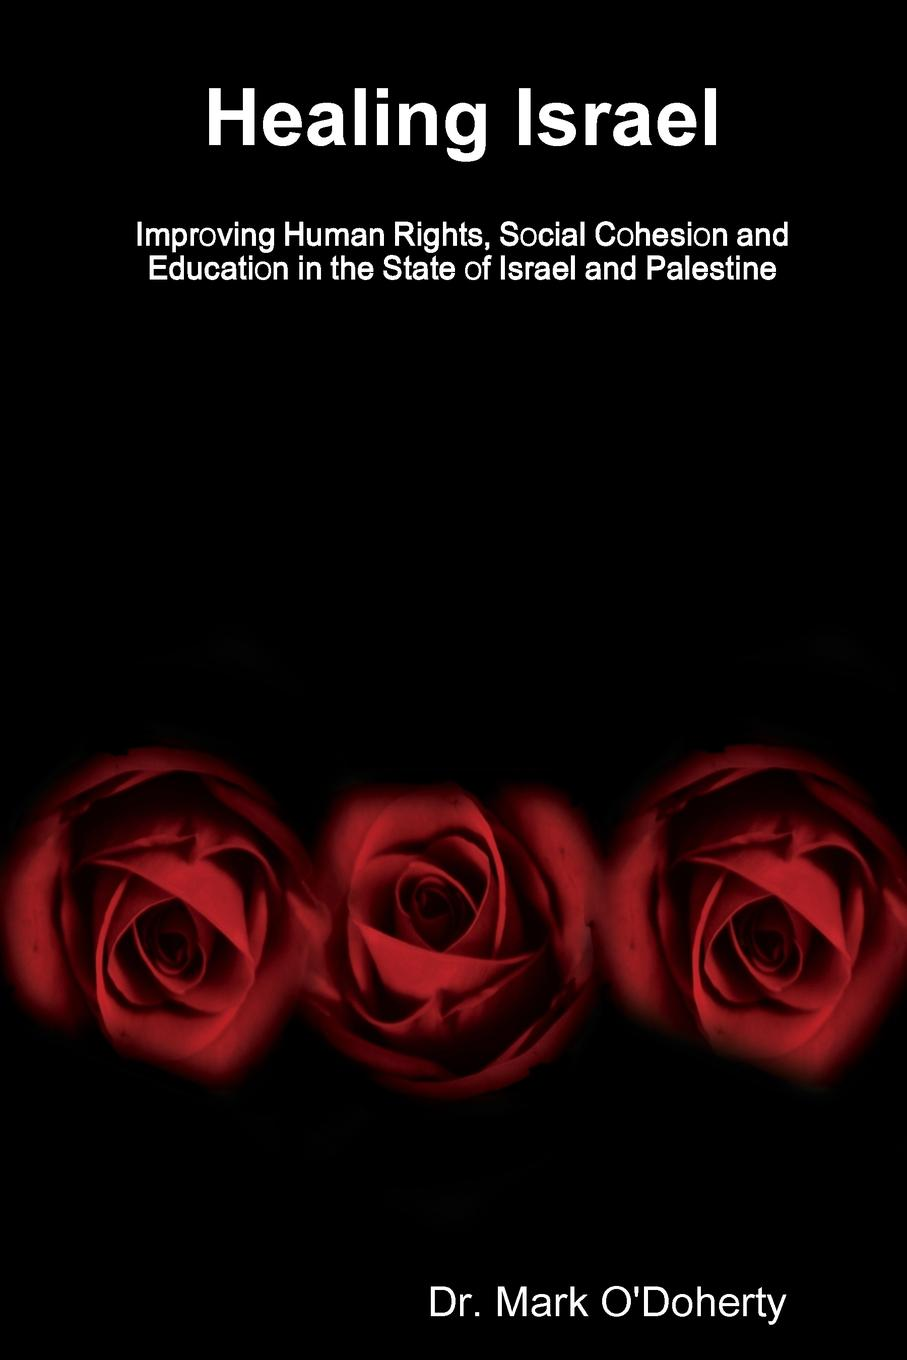 Dr. Mark O'Doherty Healing Israel - Improving Human Rights, Social Cohesion and Education in the State of Israel and Palestine arthur morris israel and palestine gaza